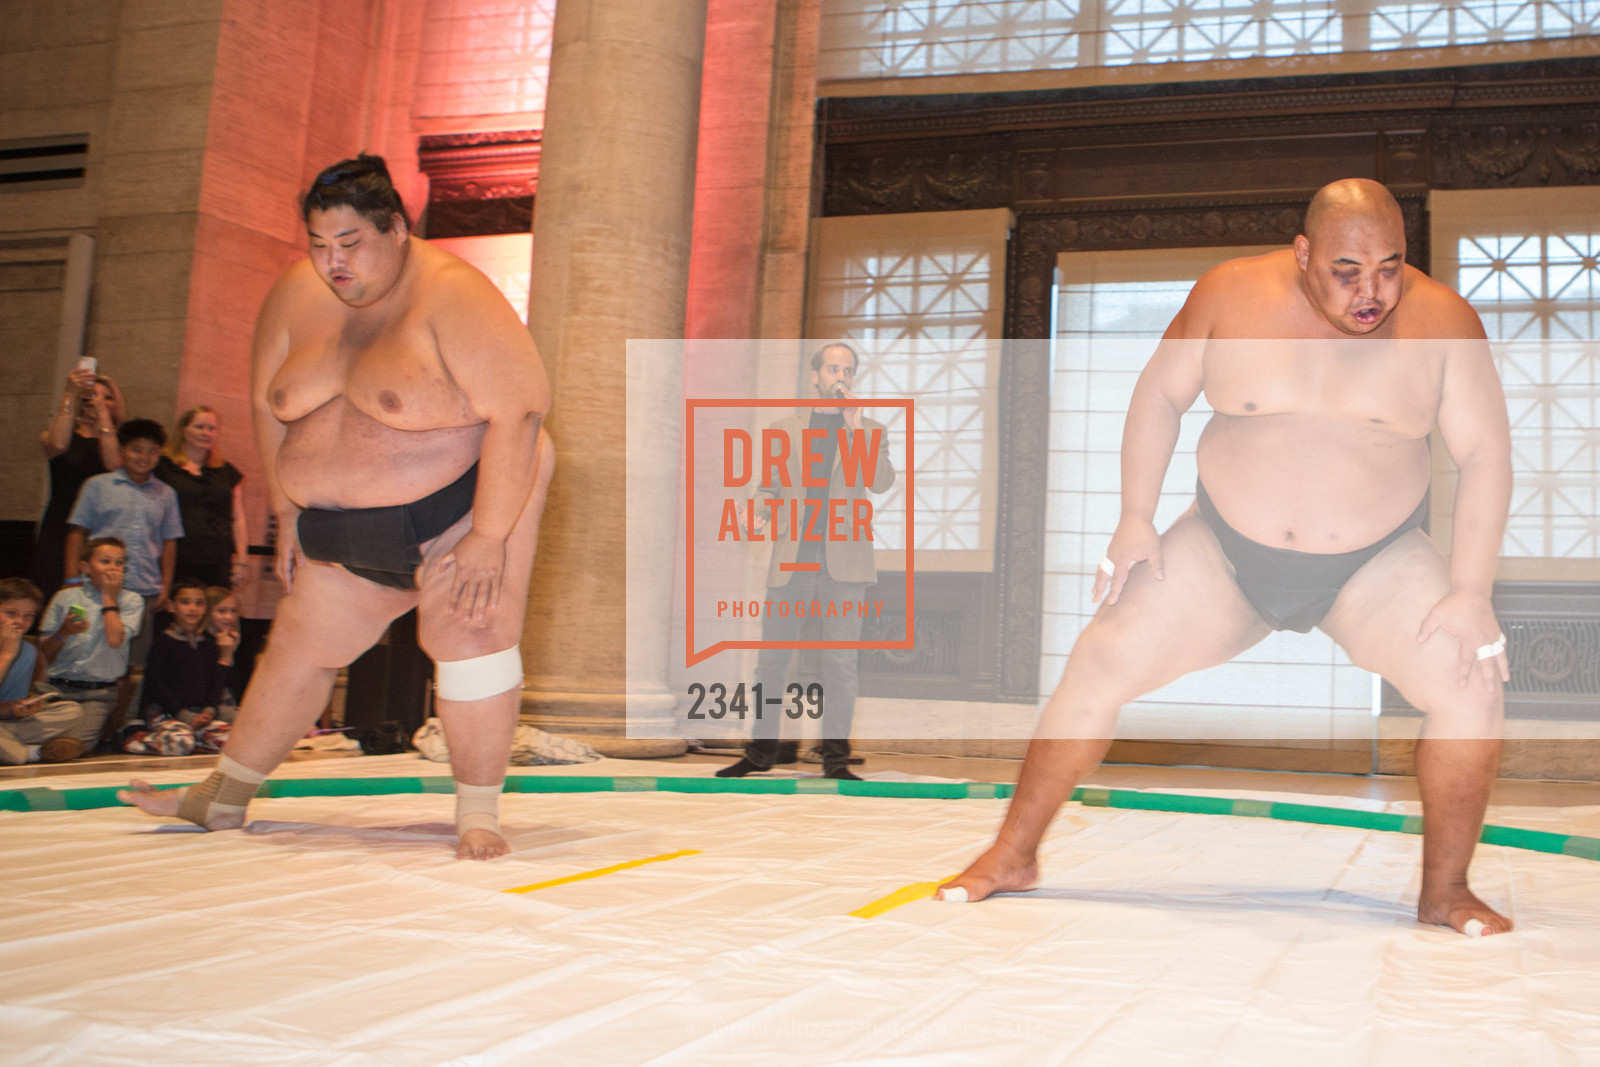 Performance, ASIAN ART MUSEUM Presents Once Upon a Time in Tokyo, Asian Art Museum. 200 Larkin St., San Francisco, April 17th, 2015